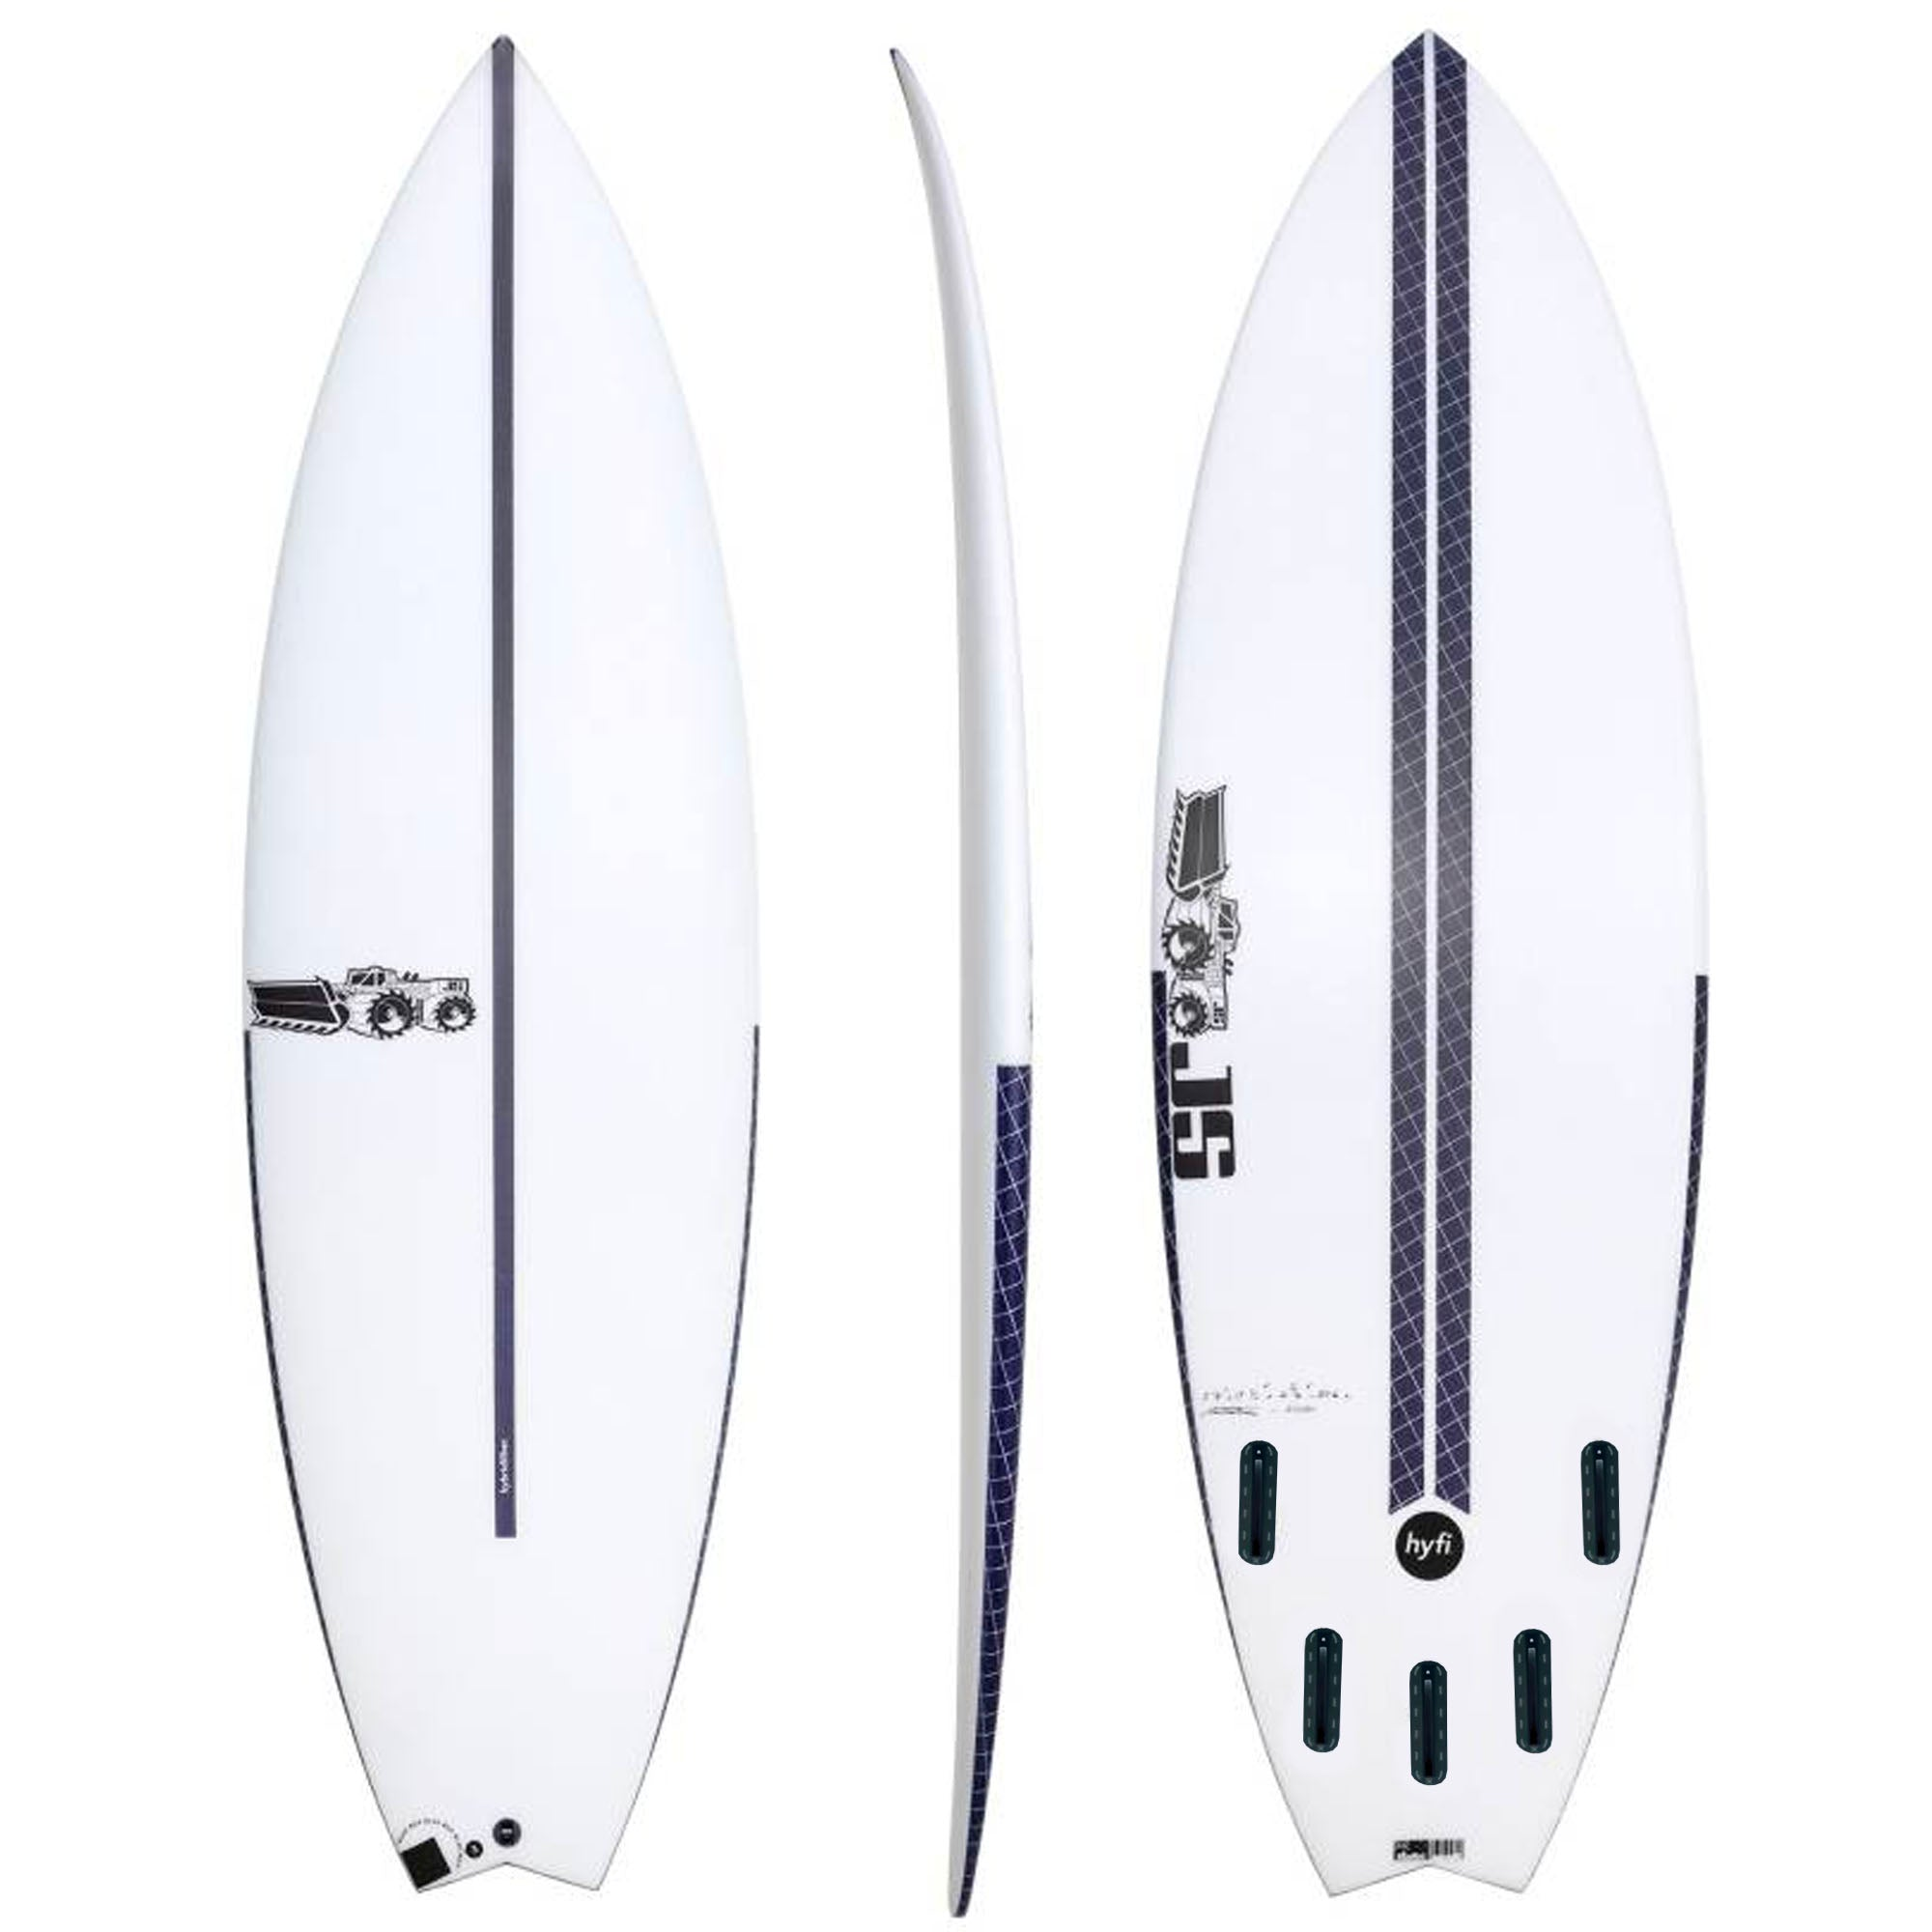 JS Blak Box 3 Swallow HYFI Surfboard - Futures